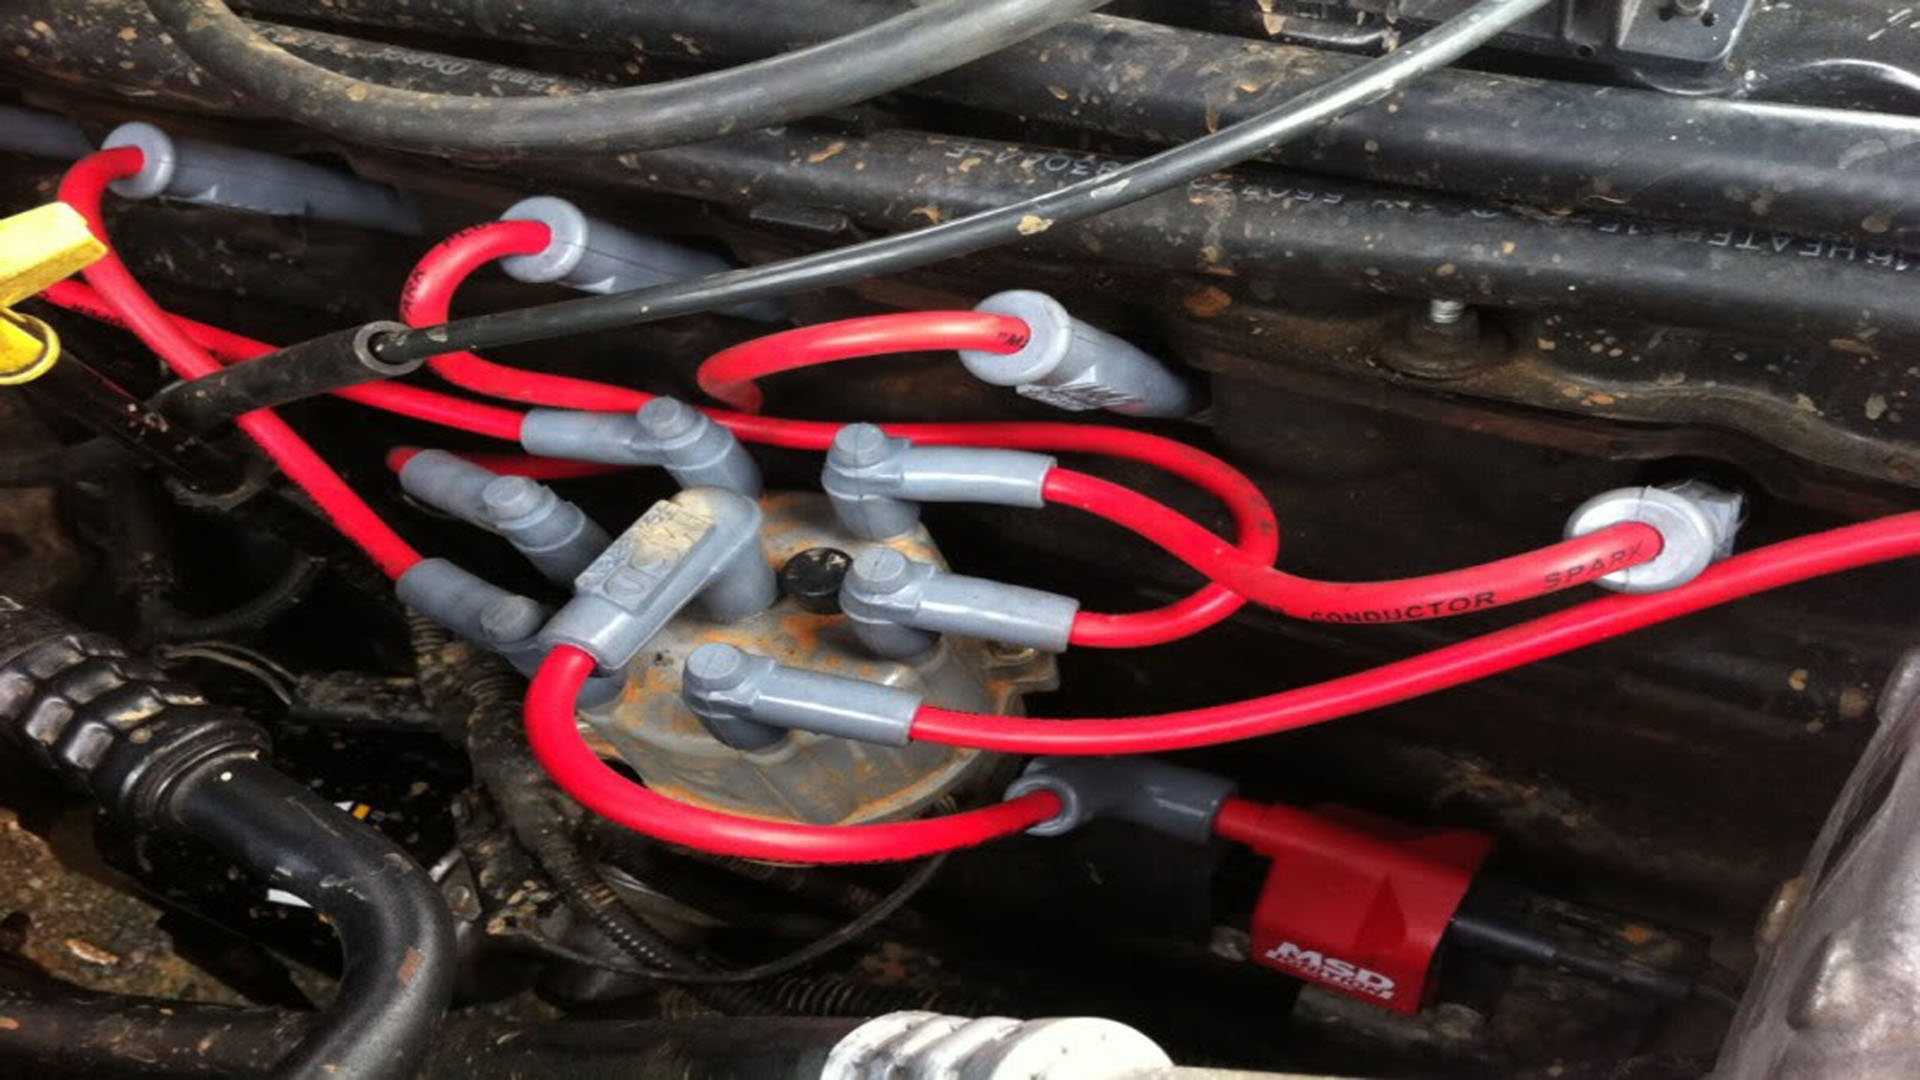 jeep cherokee 1984-1996: how to replace spark plugs and wires |  cherokeeforum  jeep cherokee forum